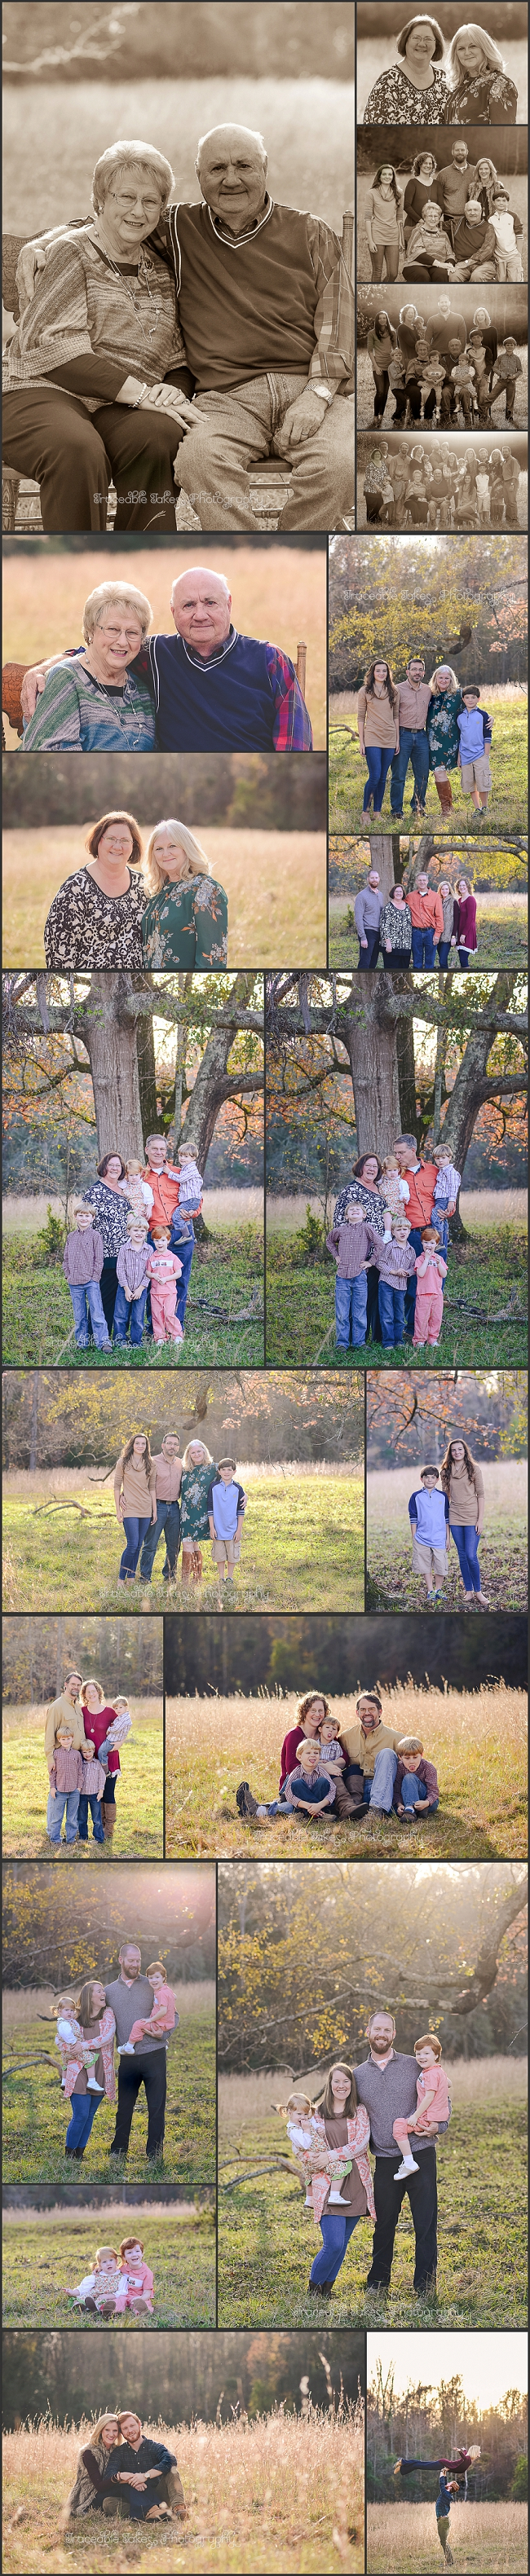 family-photographer-columbus-ga-traceabletakes3